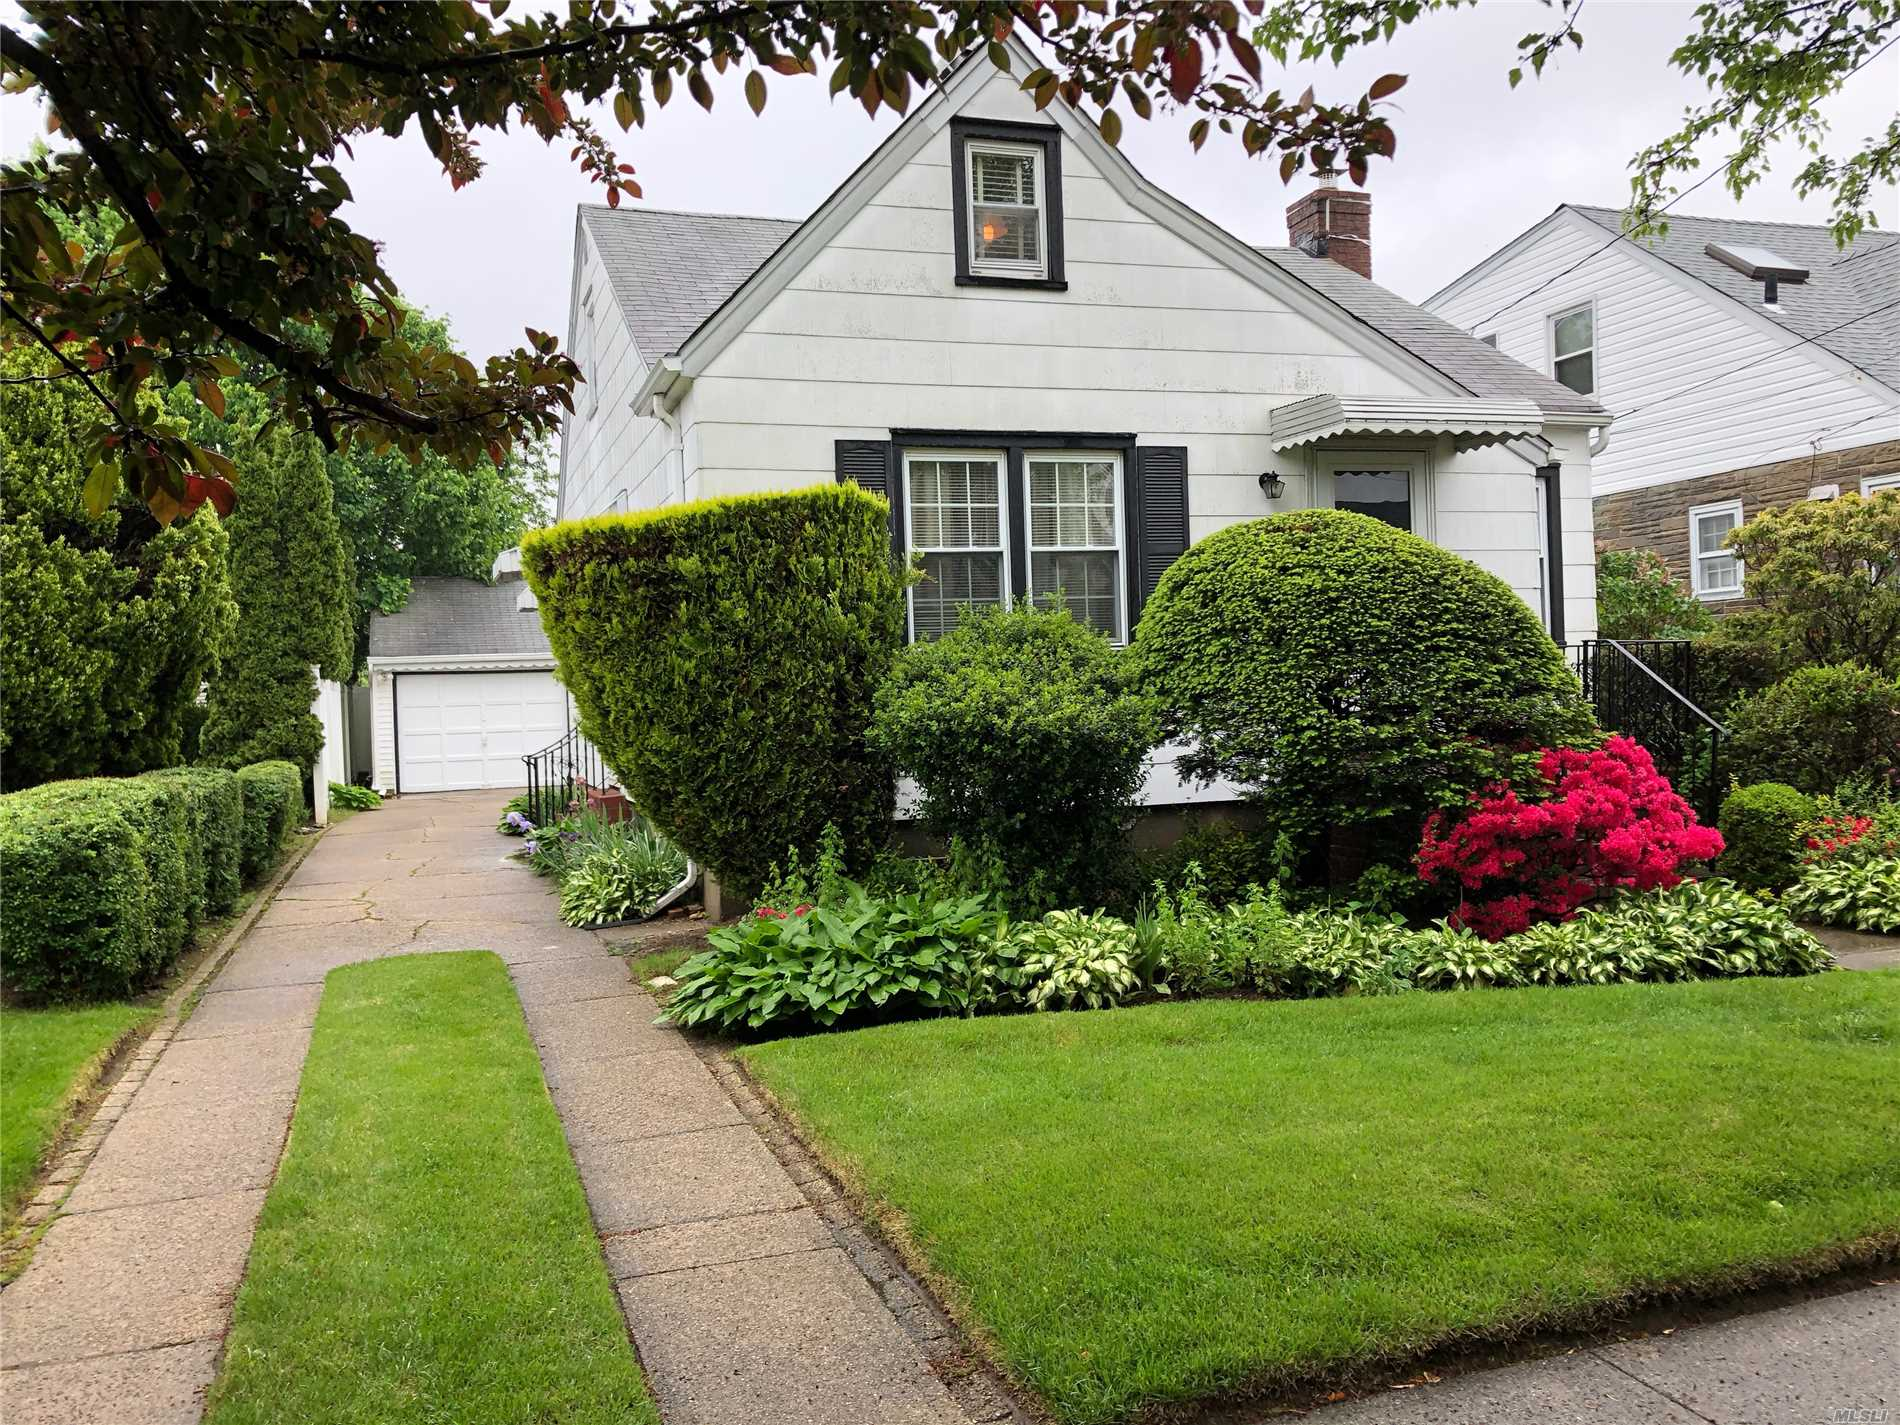 Pride Of Ownership, Clean And Well Kept Mid Block Cape. 3 Large Bedrooms Plus Loft Sleep Area/Office Area/Nursery Area/Or Sitting Room Etc. 2 Car Garage! New Granite And Ss Appliances In Eik. Newly Redone Bath/Pedestal Sink. Hardwood Floors In 1st And 2nd Floor. New Pvc Fencing. Sd#5. Won't Last. A Must See.